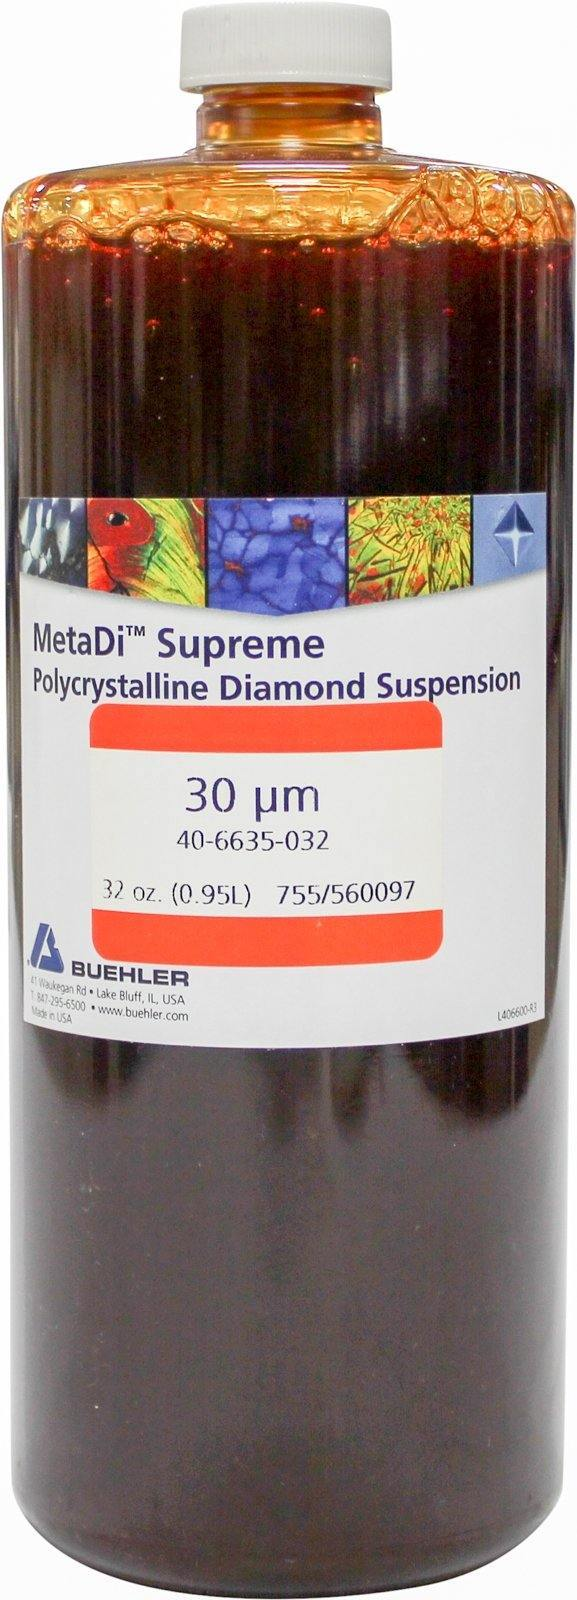 MetaDi Supreme, Poly, 30 µm 32oz-p